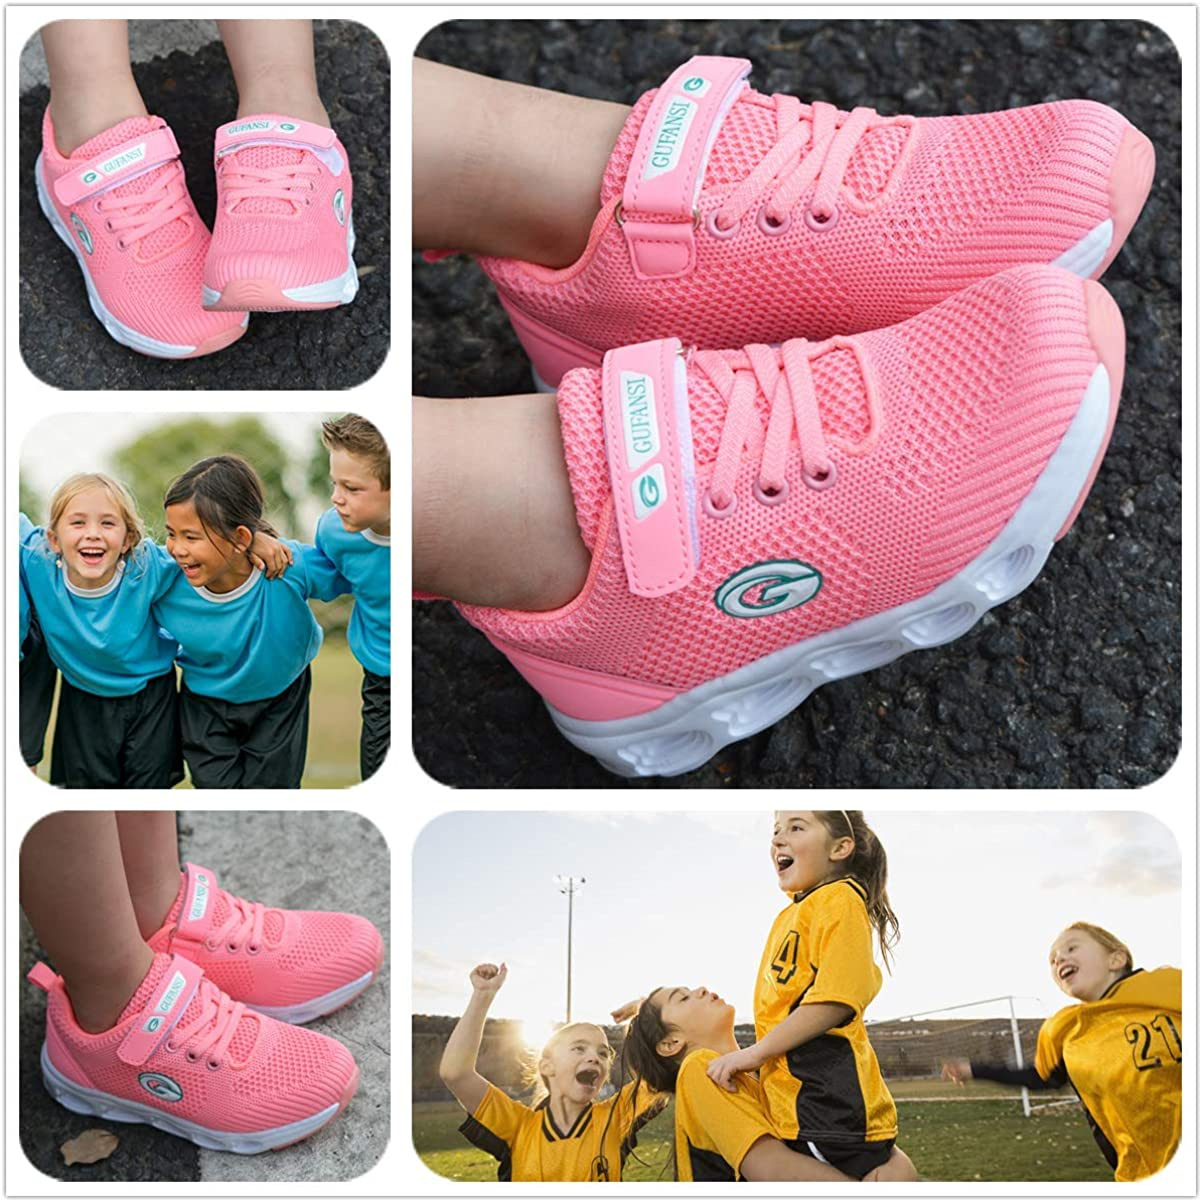 Girls Indoor Outdoor Shoes Size 4 UK Trainers Little Kid Sneakers Child Trainers Sports Jogging Road Running Walking Shoes Stylish Mesh Velcro Comfort Flat Classic Easy Shoes Unisex Pink